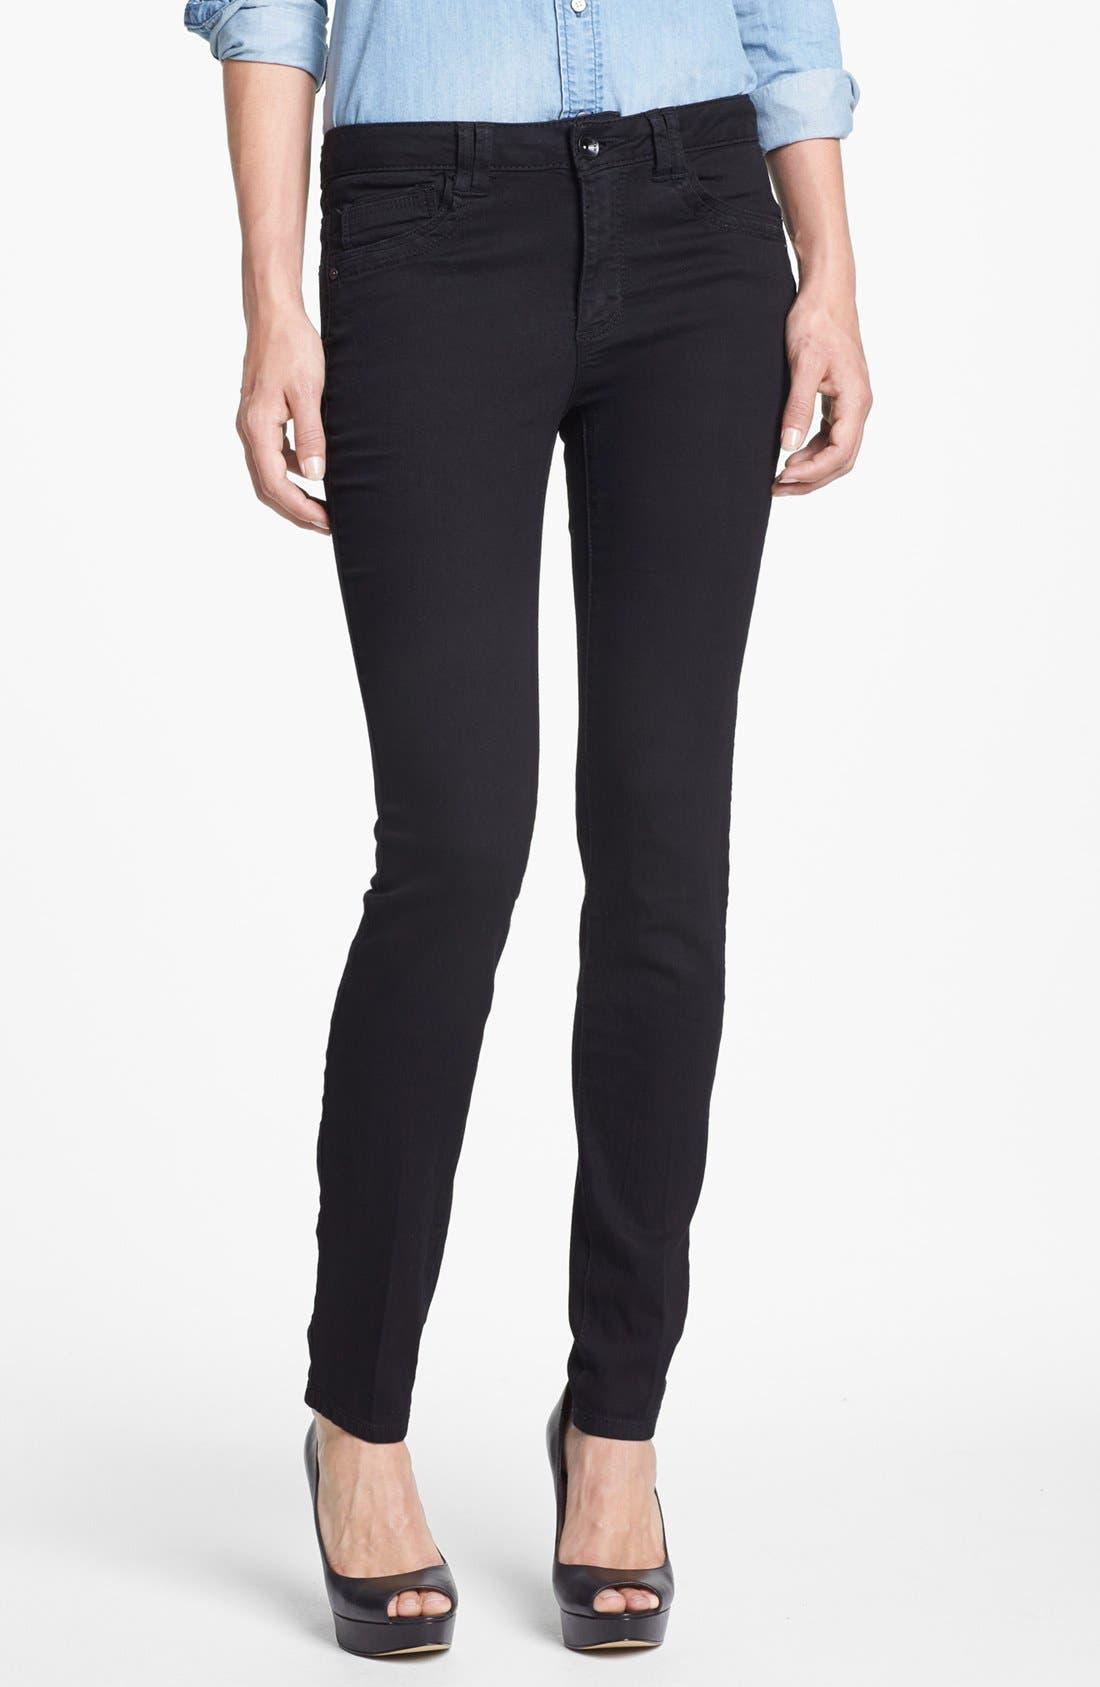 Alternate Image 1 Selected - Wit & Wisdom Skinny Jeans (Black) (Nordstrom Exclusive)